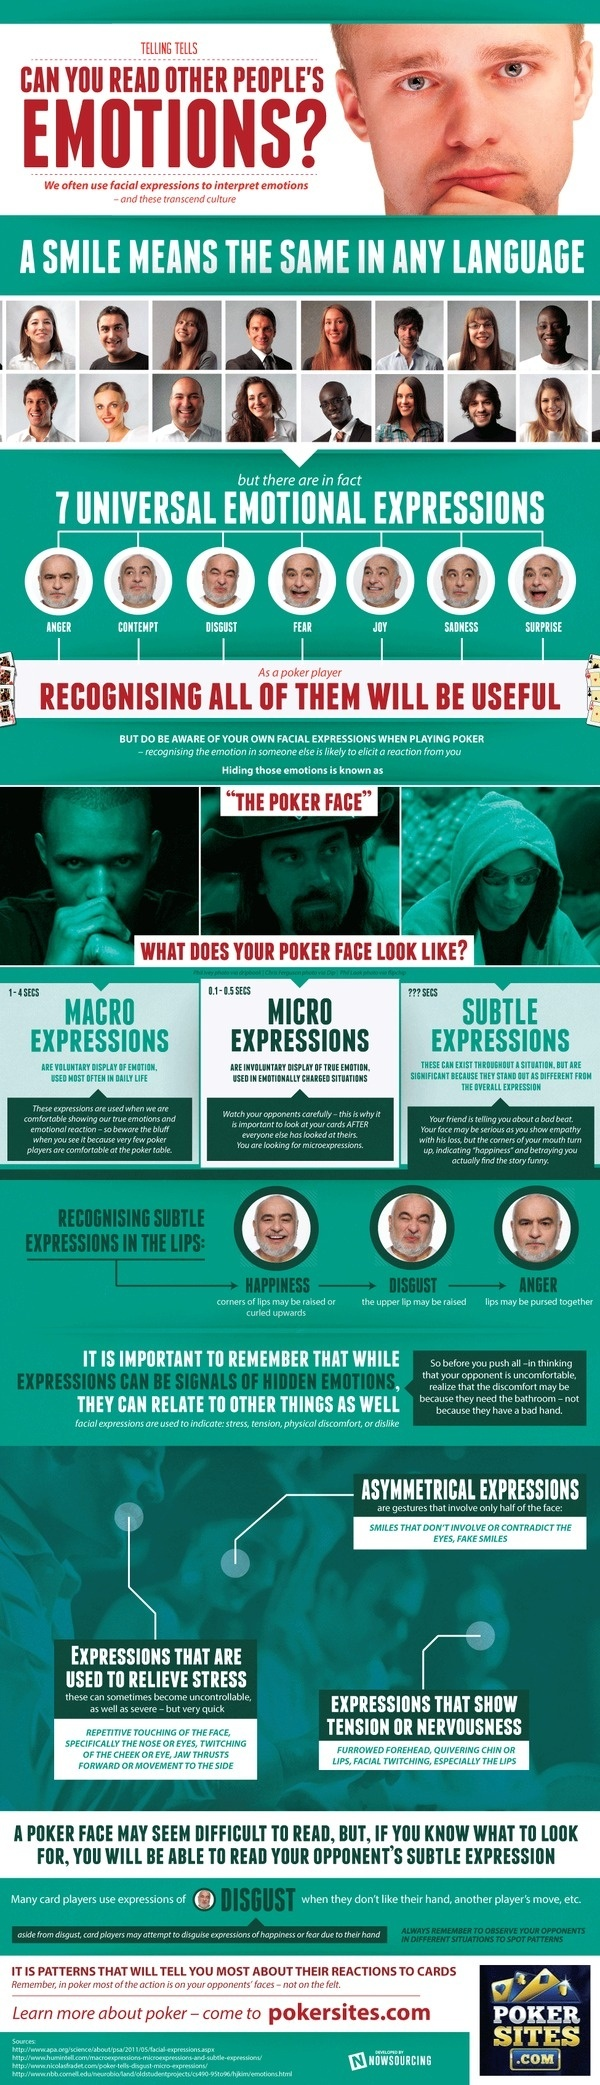 Poker Facial Tells #infographic #poker #face #expressions #emotions